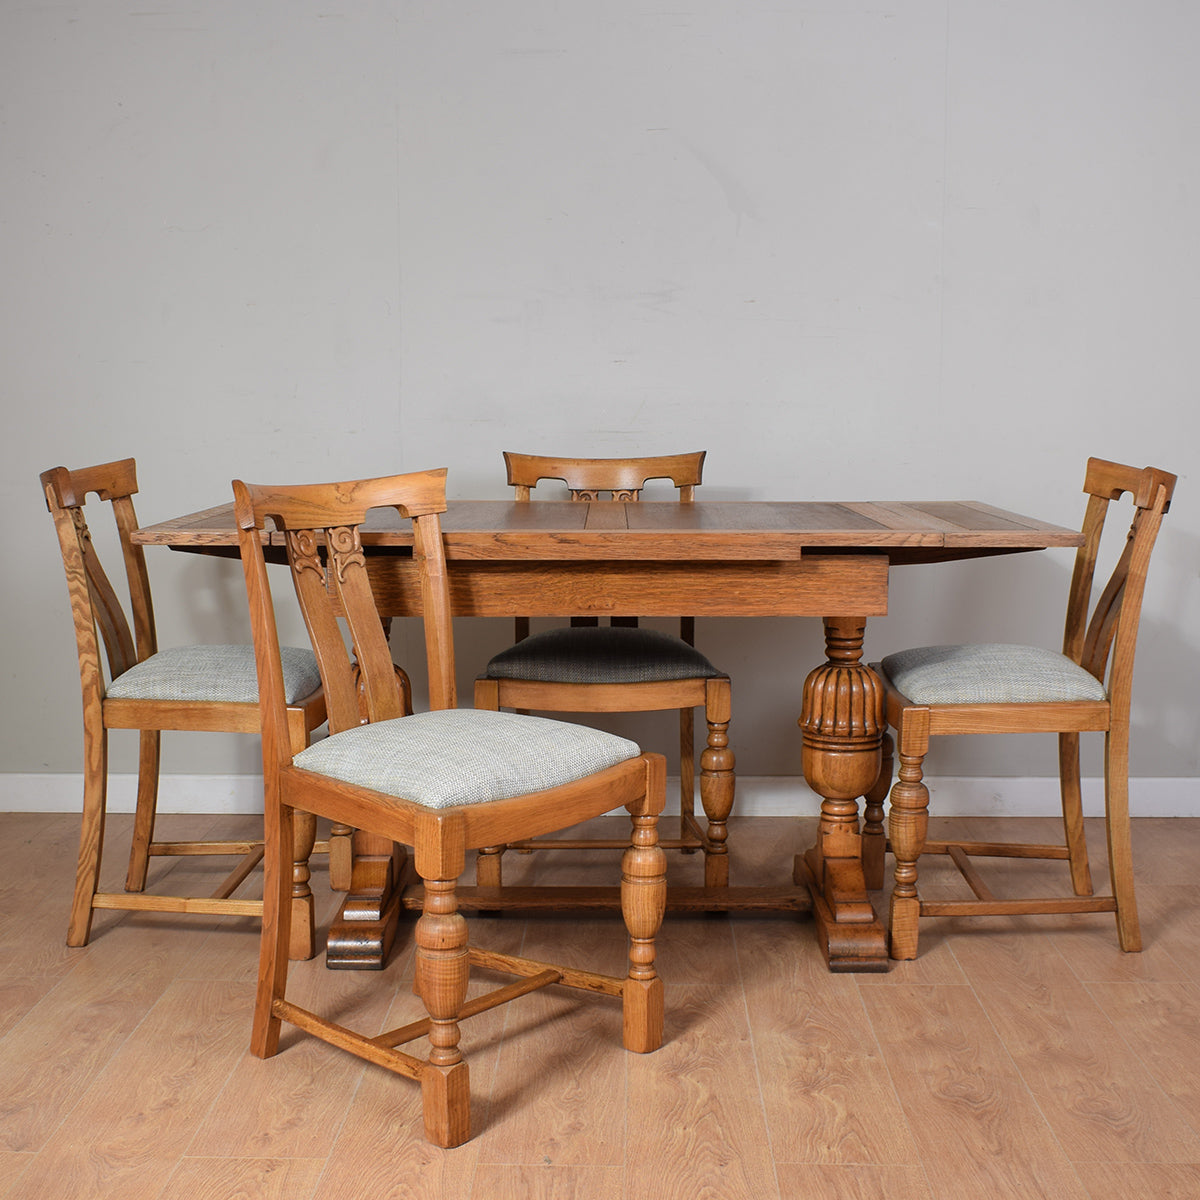 Vintage Rustic Oak Draw Leaf Table And 4 Chairs